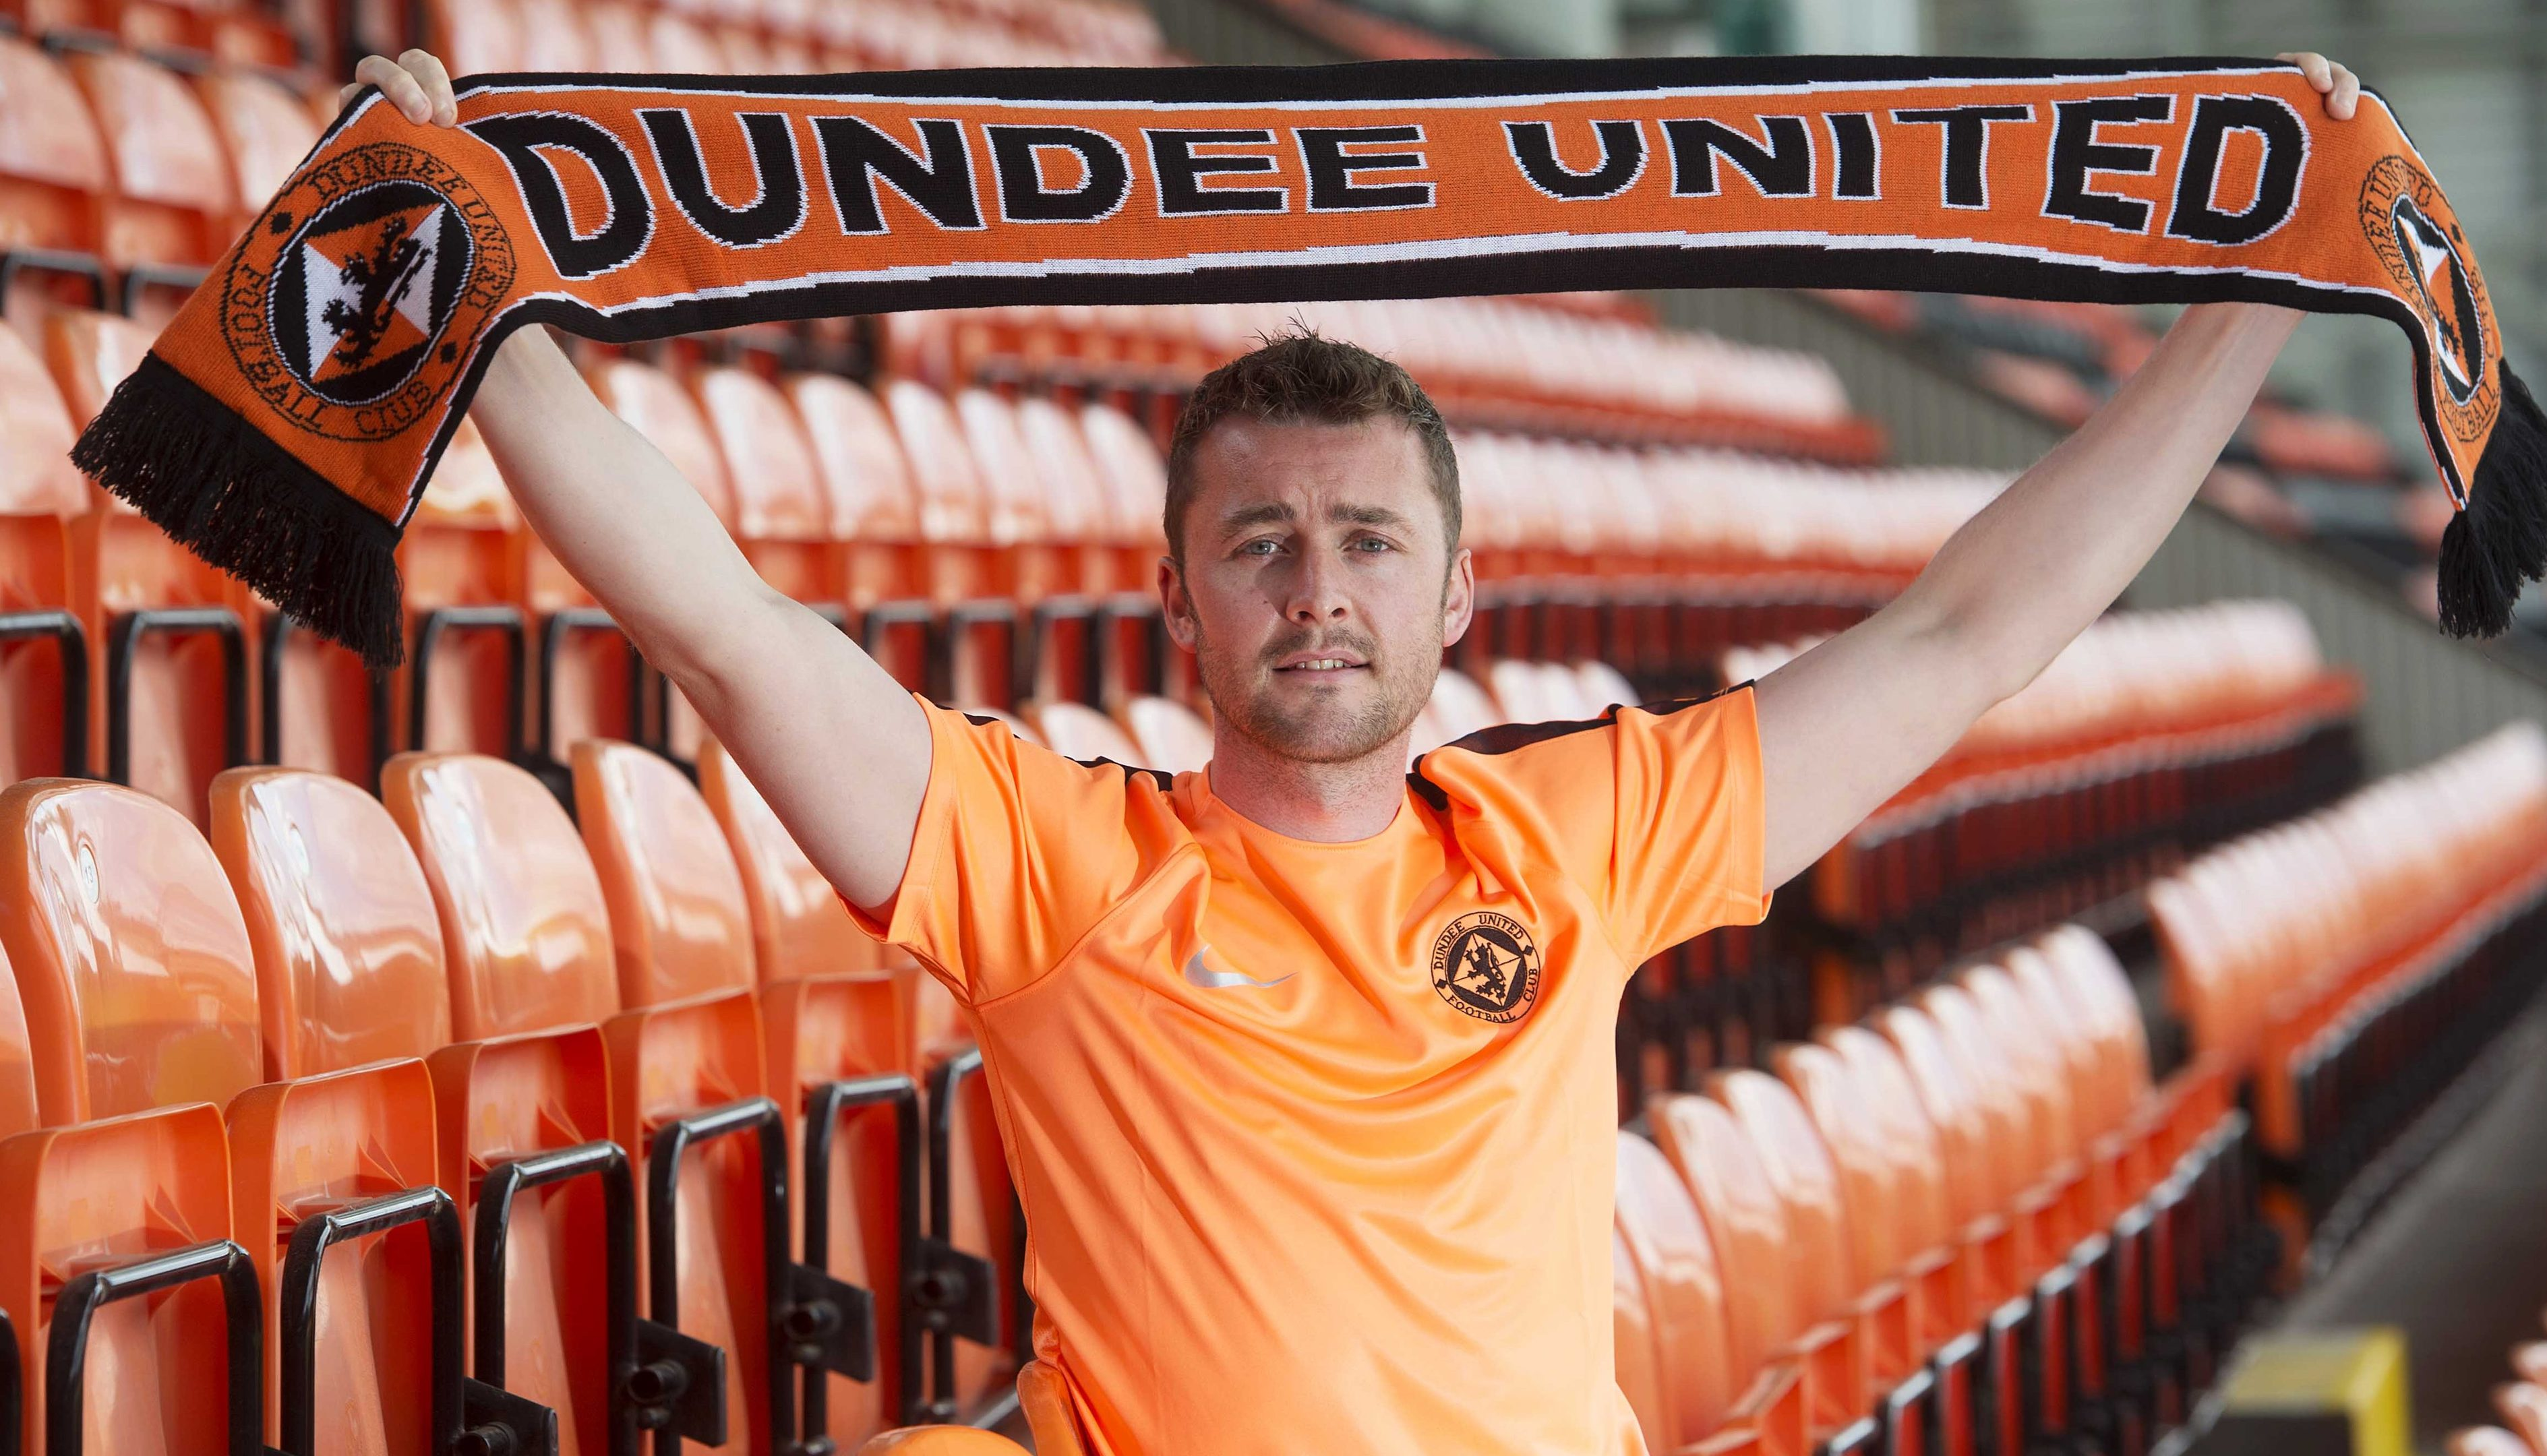 Tam Scobbie is one of Dundee United's new players.